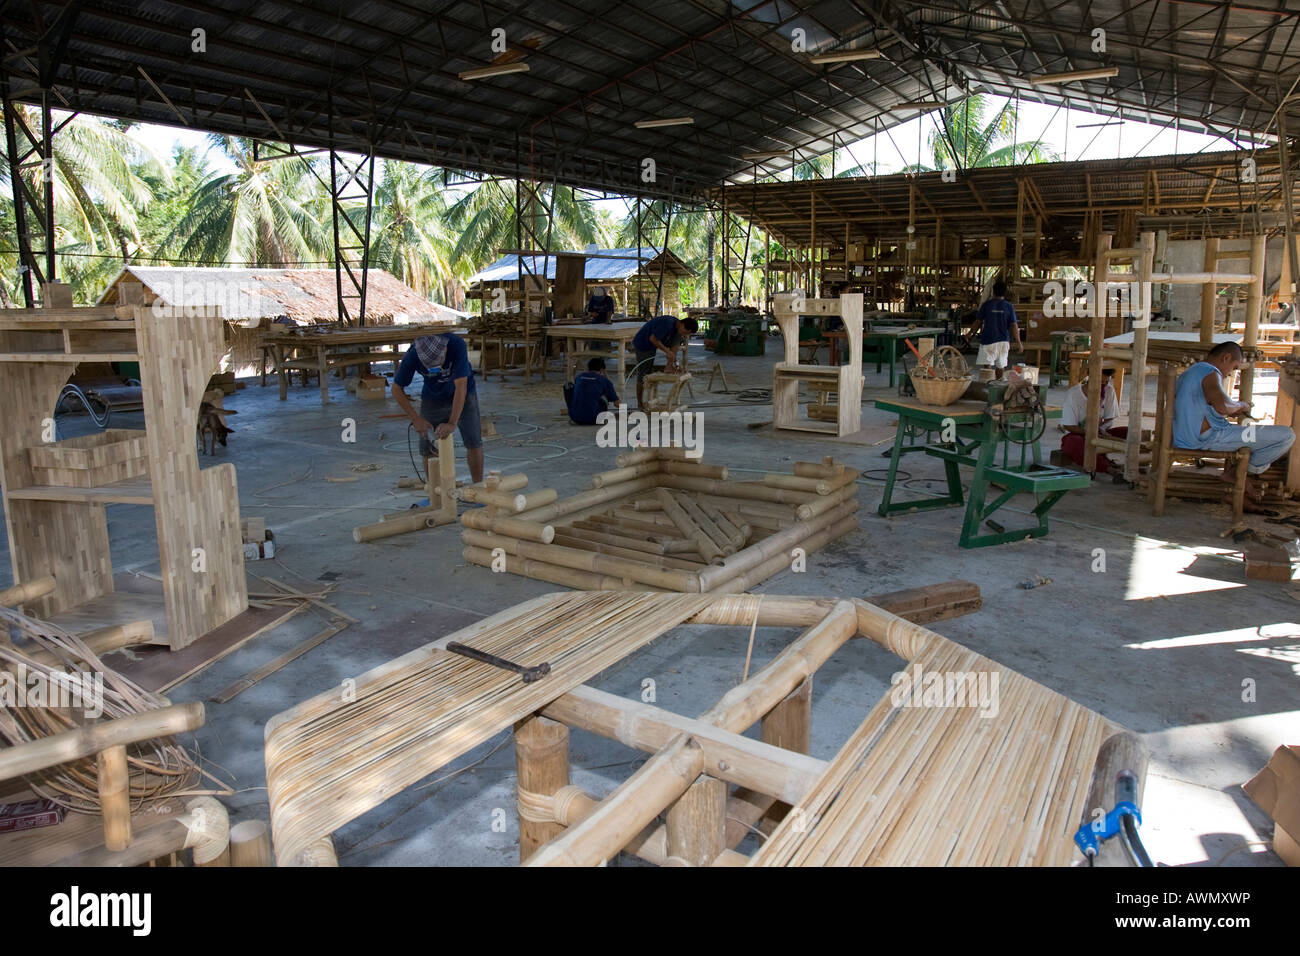 Bamboo Being Processed At A Furniture Factory In Negros The Stock Photo 16617297 Alamy